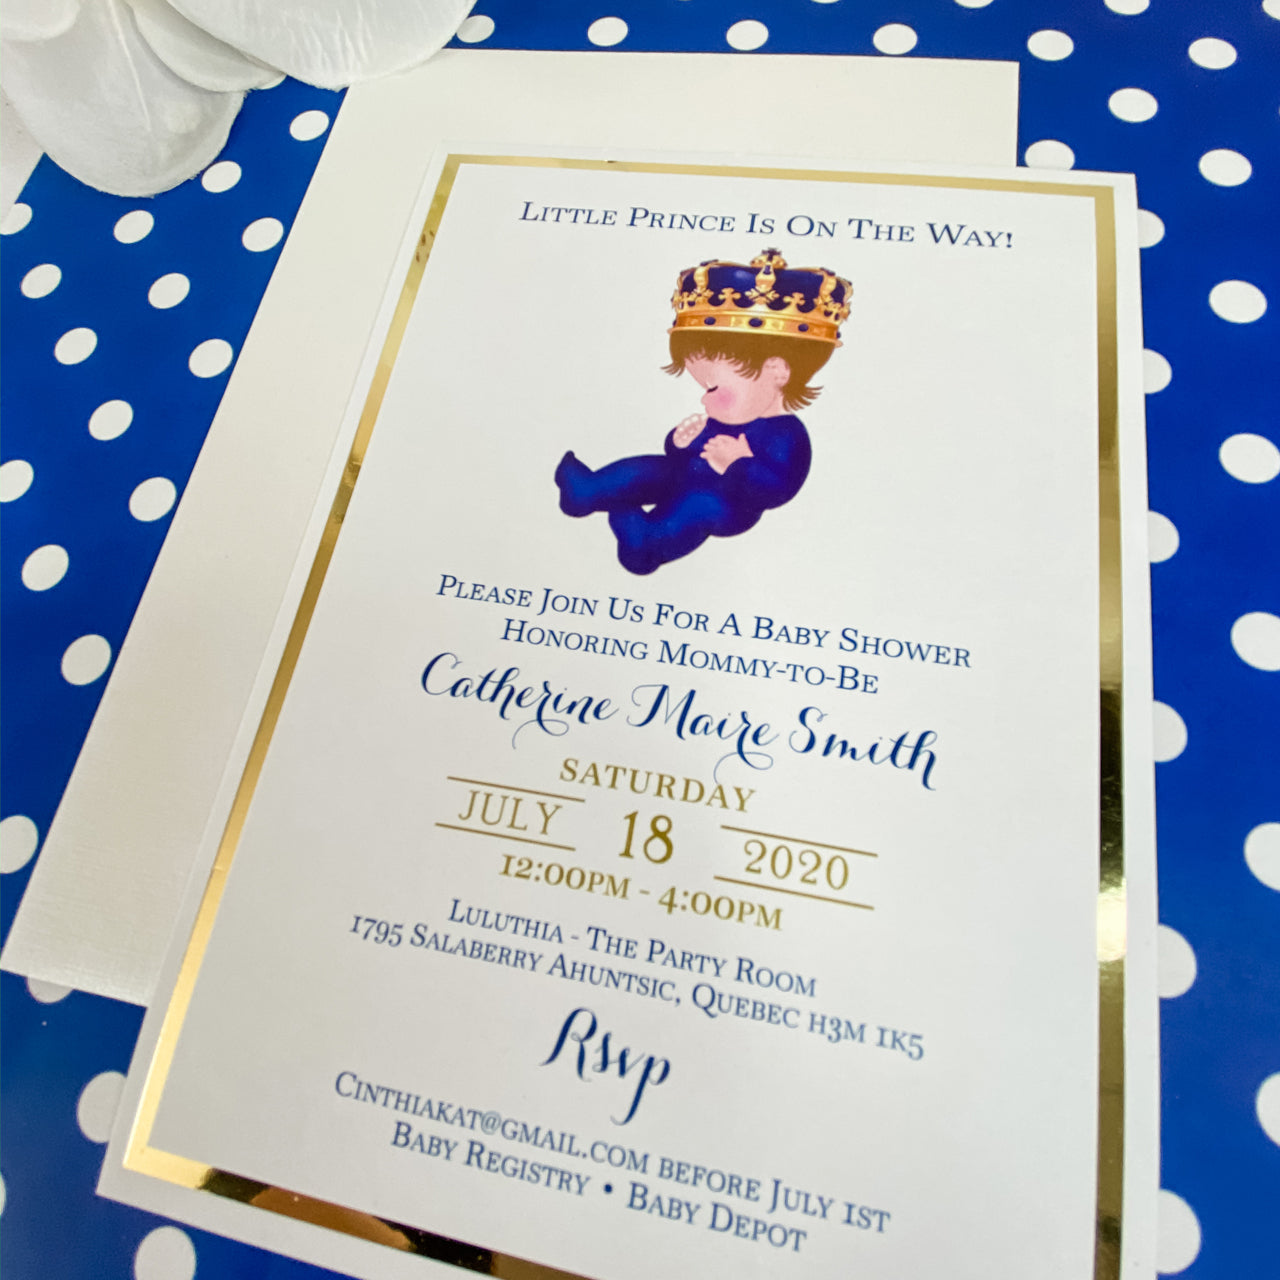 LITTLE PRINCE IS ON THE WAY -  IT'S A BOY INVITATION CARD